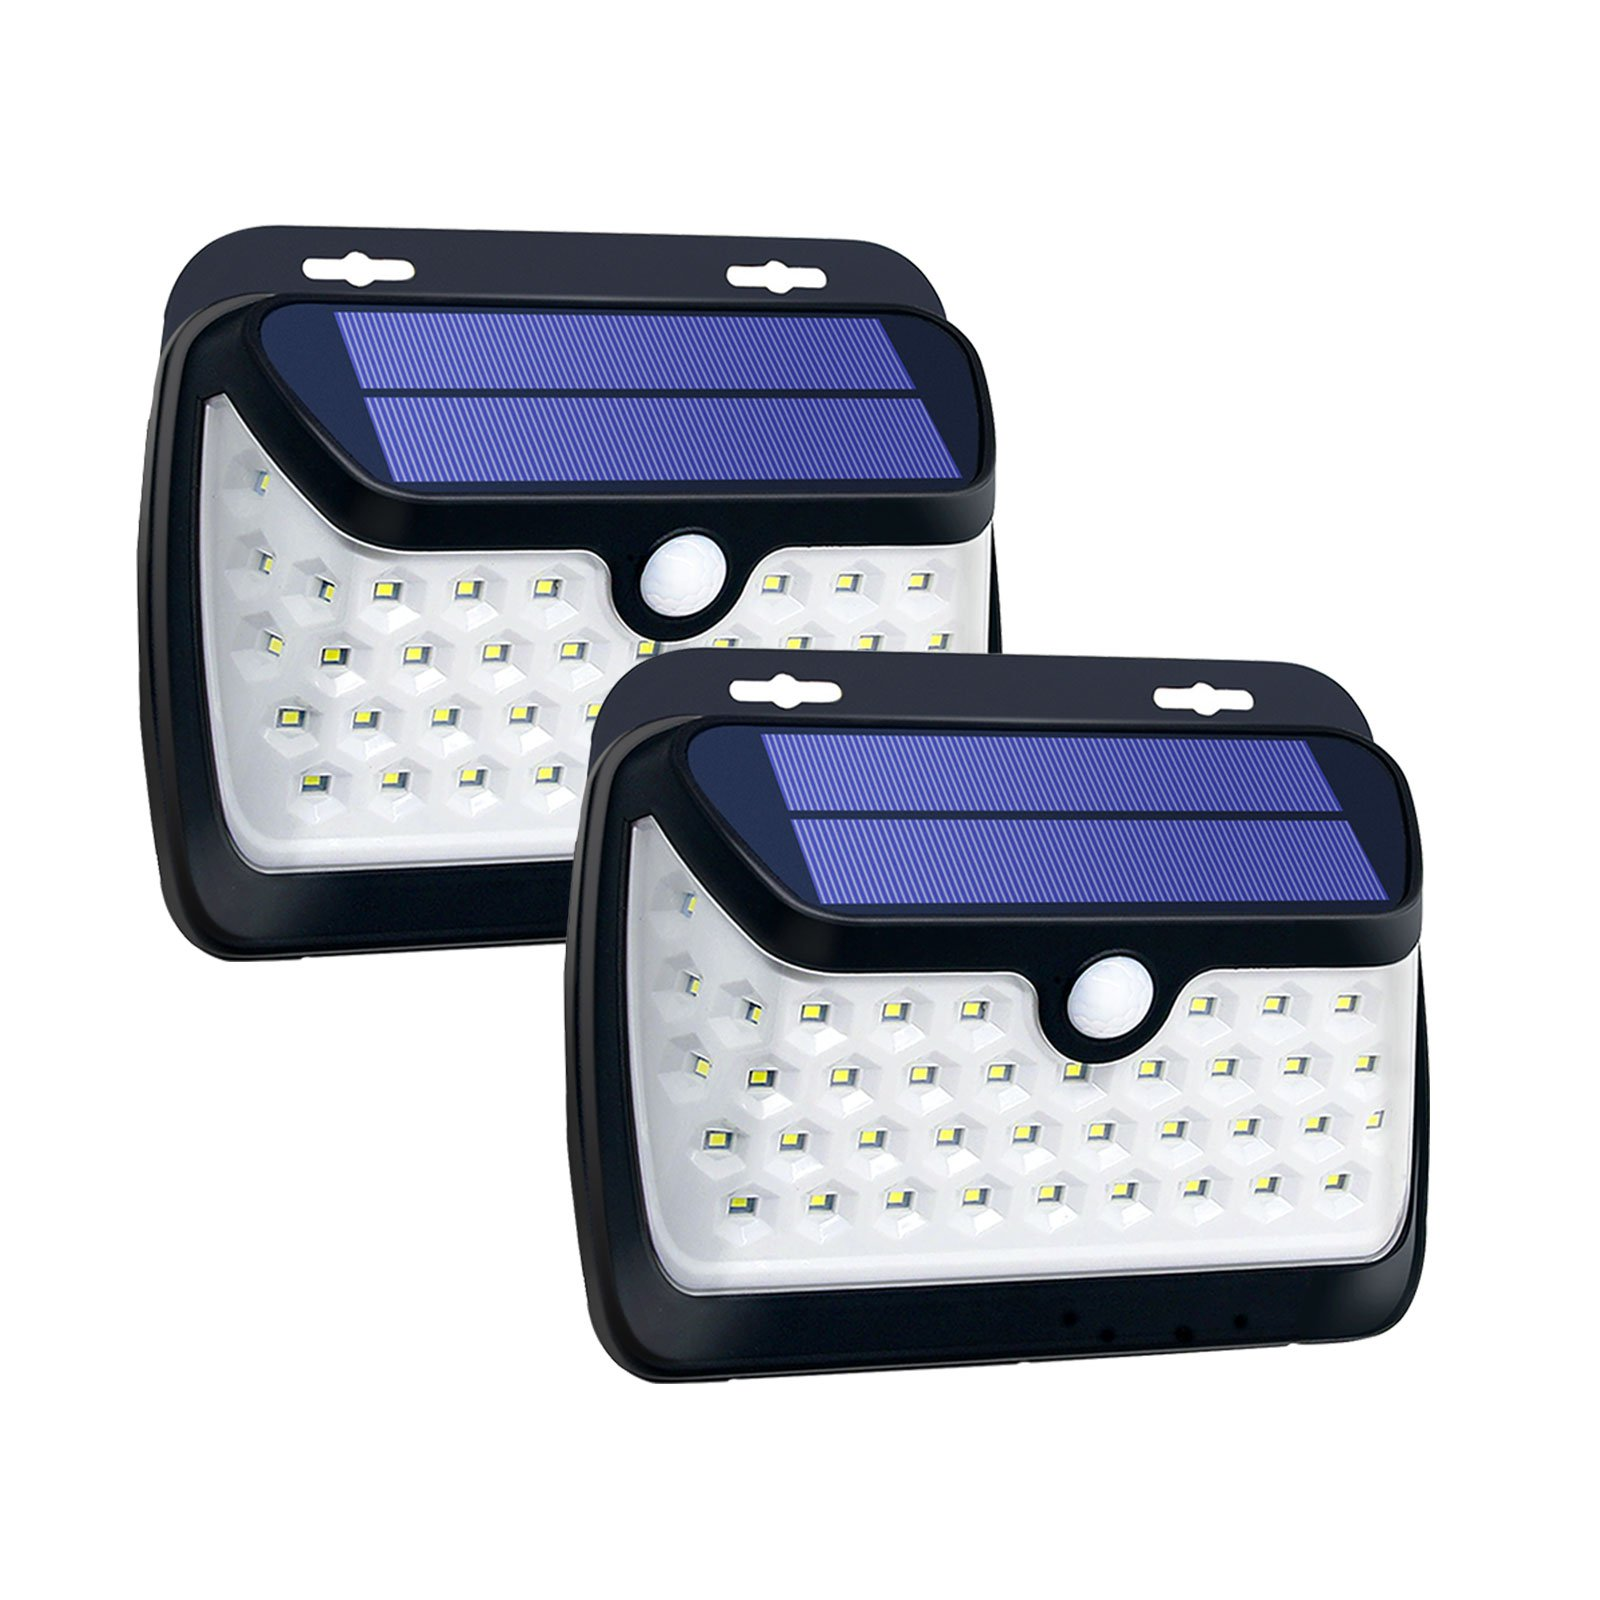 Solar Lights Outdoor, 42 LED Solar Lighting with IP65 Waterproof Wireless Solar Motion Sensor Lights to Auto On/Off for Wall Front Door Deck Step Wall Yard Fence Patio Garden Driveway (42 LED +2)